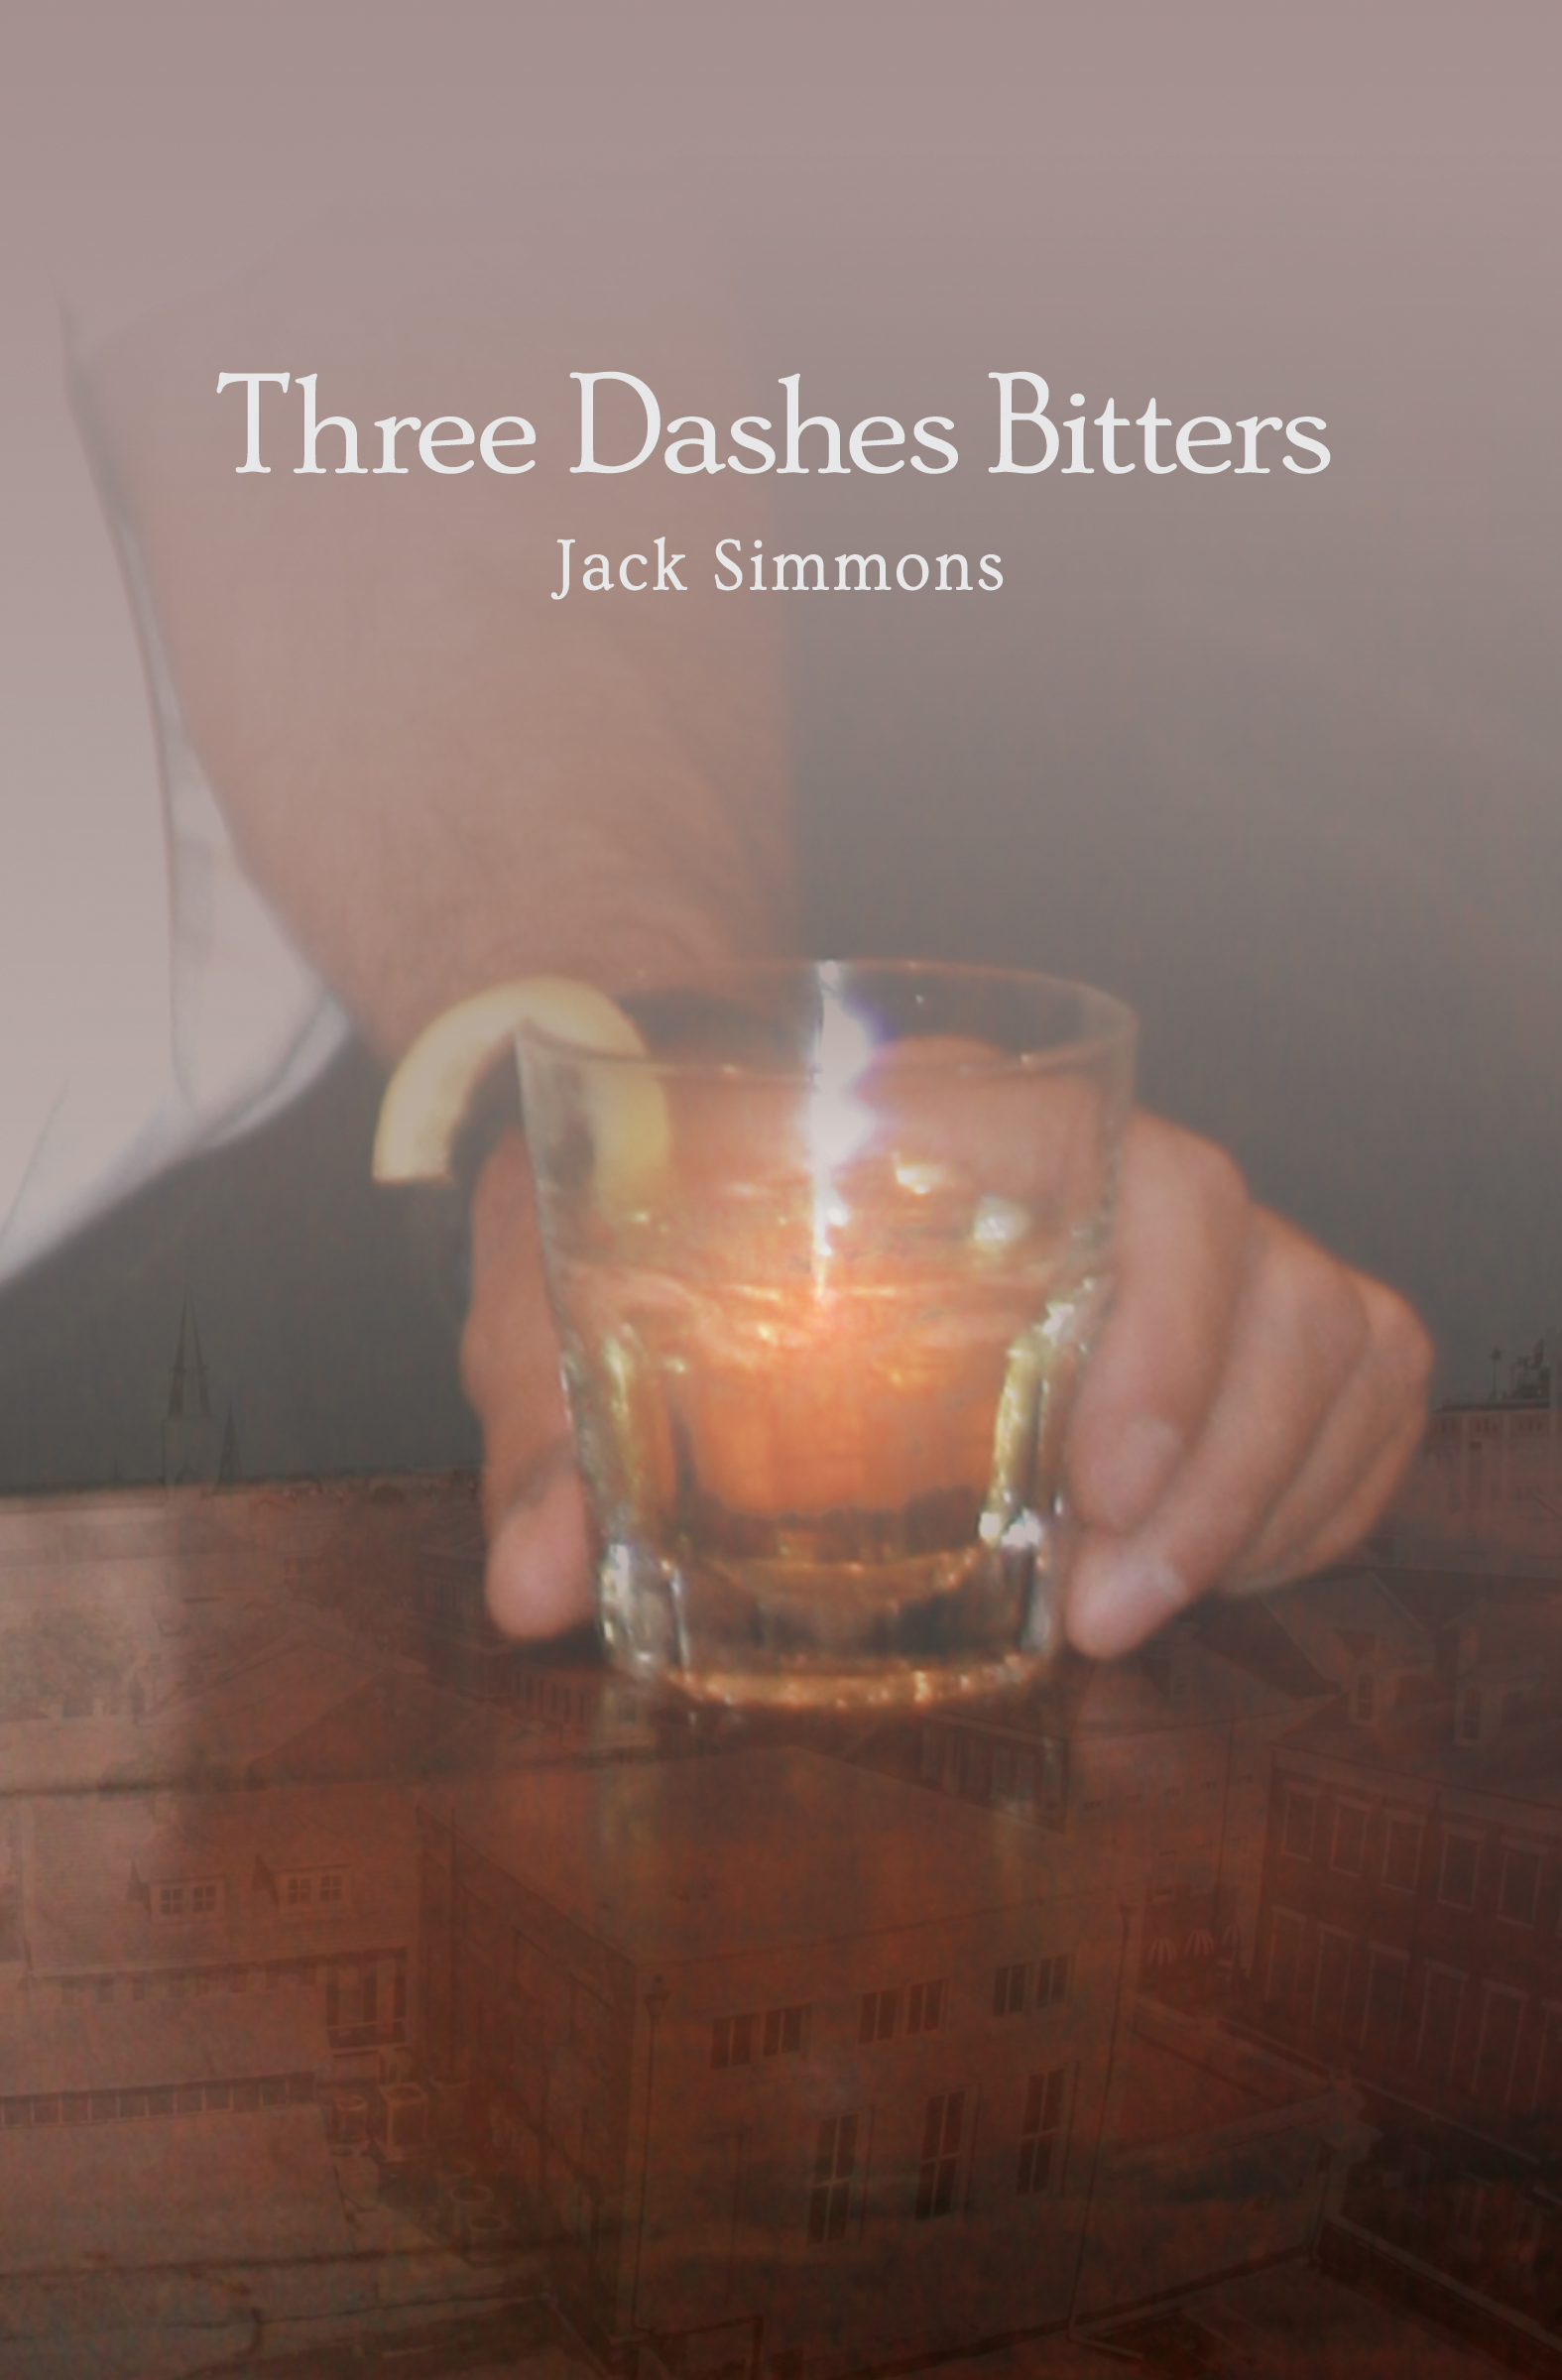 Three Dashes Bitters by Jack Simmons